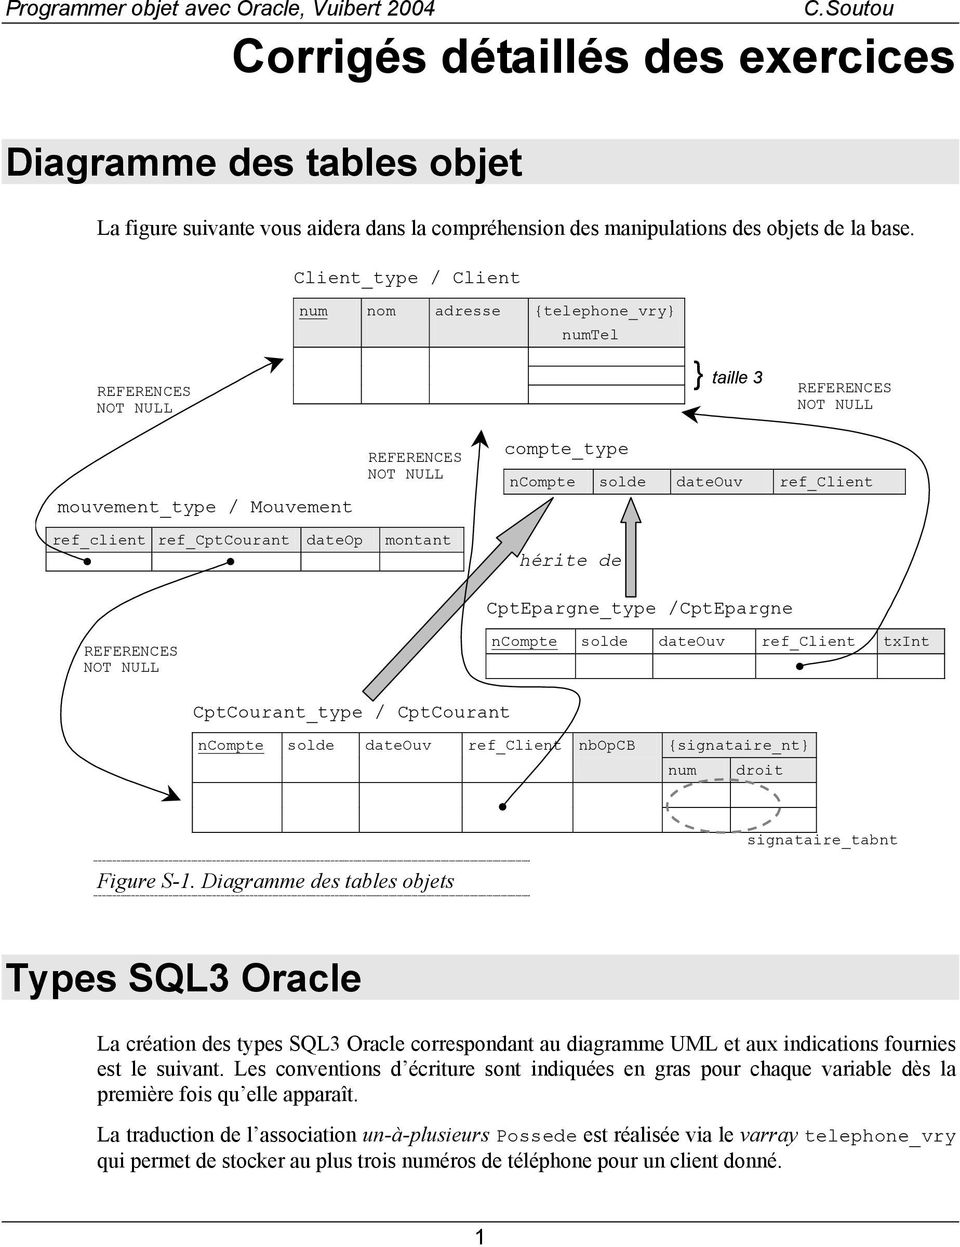 compte_type ncompte solde dateouv ref_client hérite de CptEpargne_type CptEpargne REFERENCES NOT NULL ncompte solde dateouv ref_client txint CptCourant_type CptCourant ncompte solde dateouv